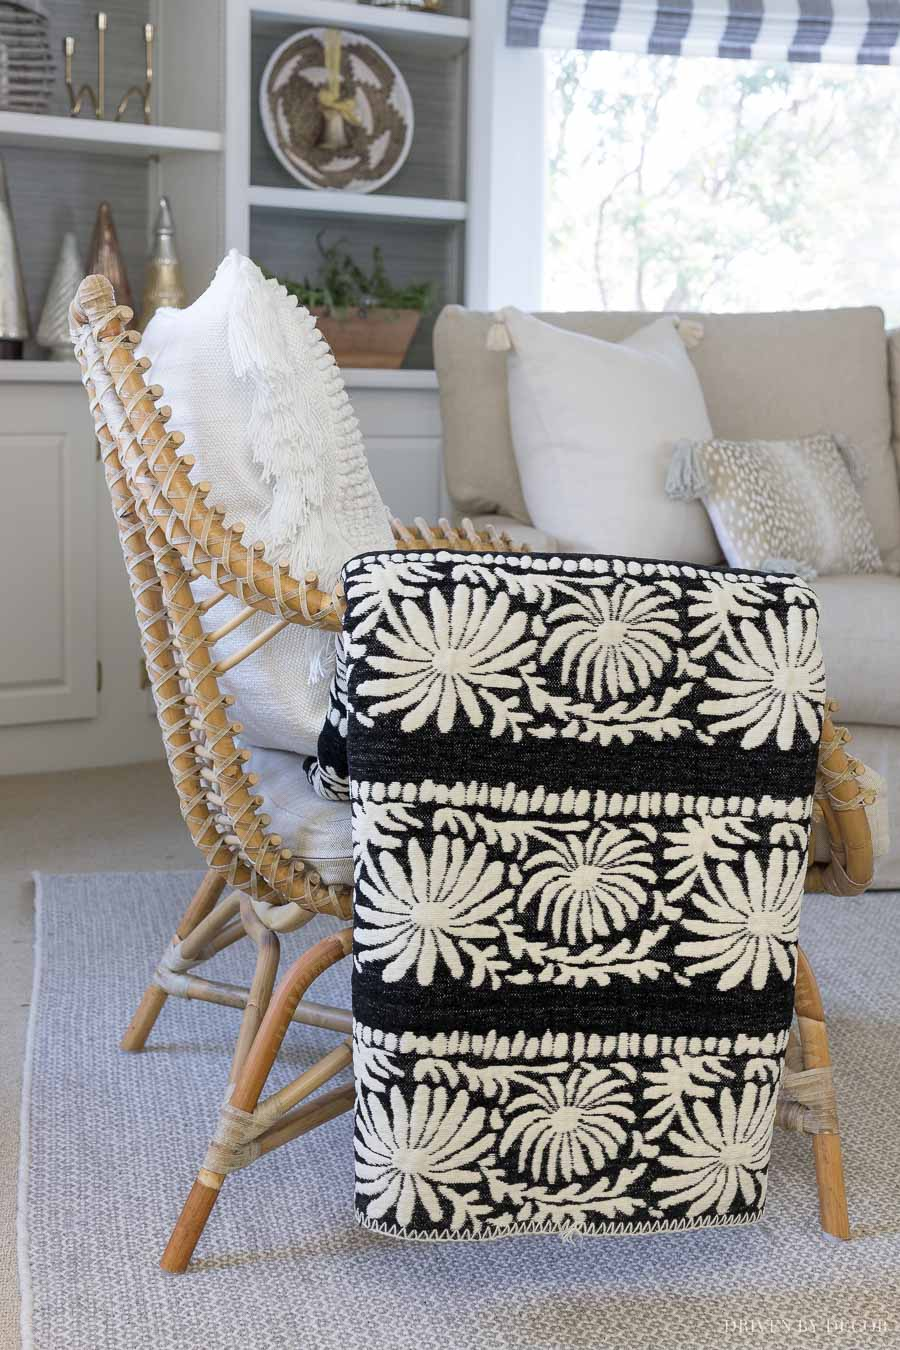 Gorgeous black and white throw at an amazing price!